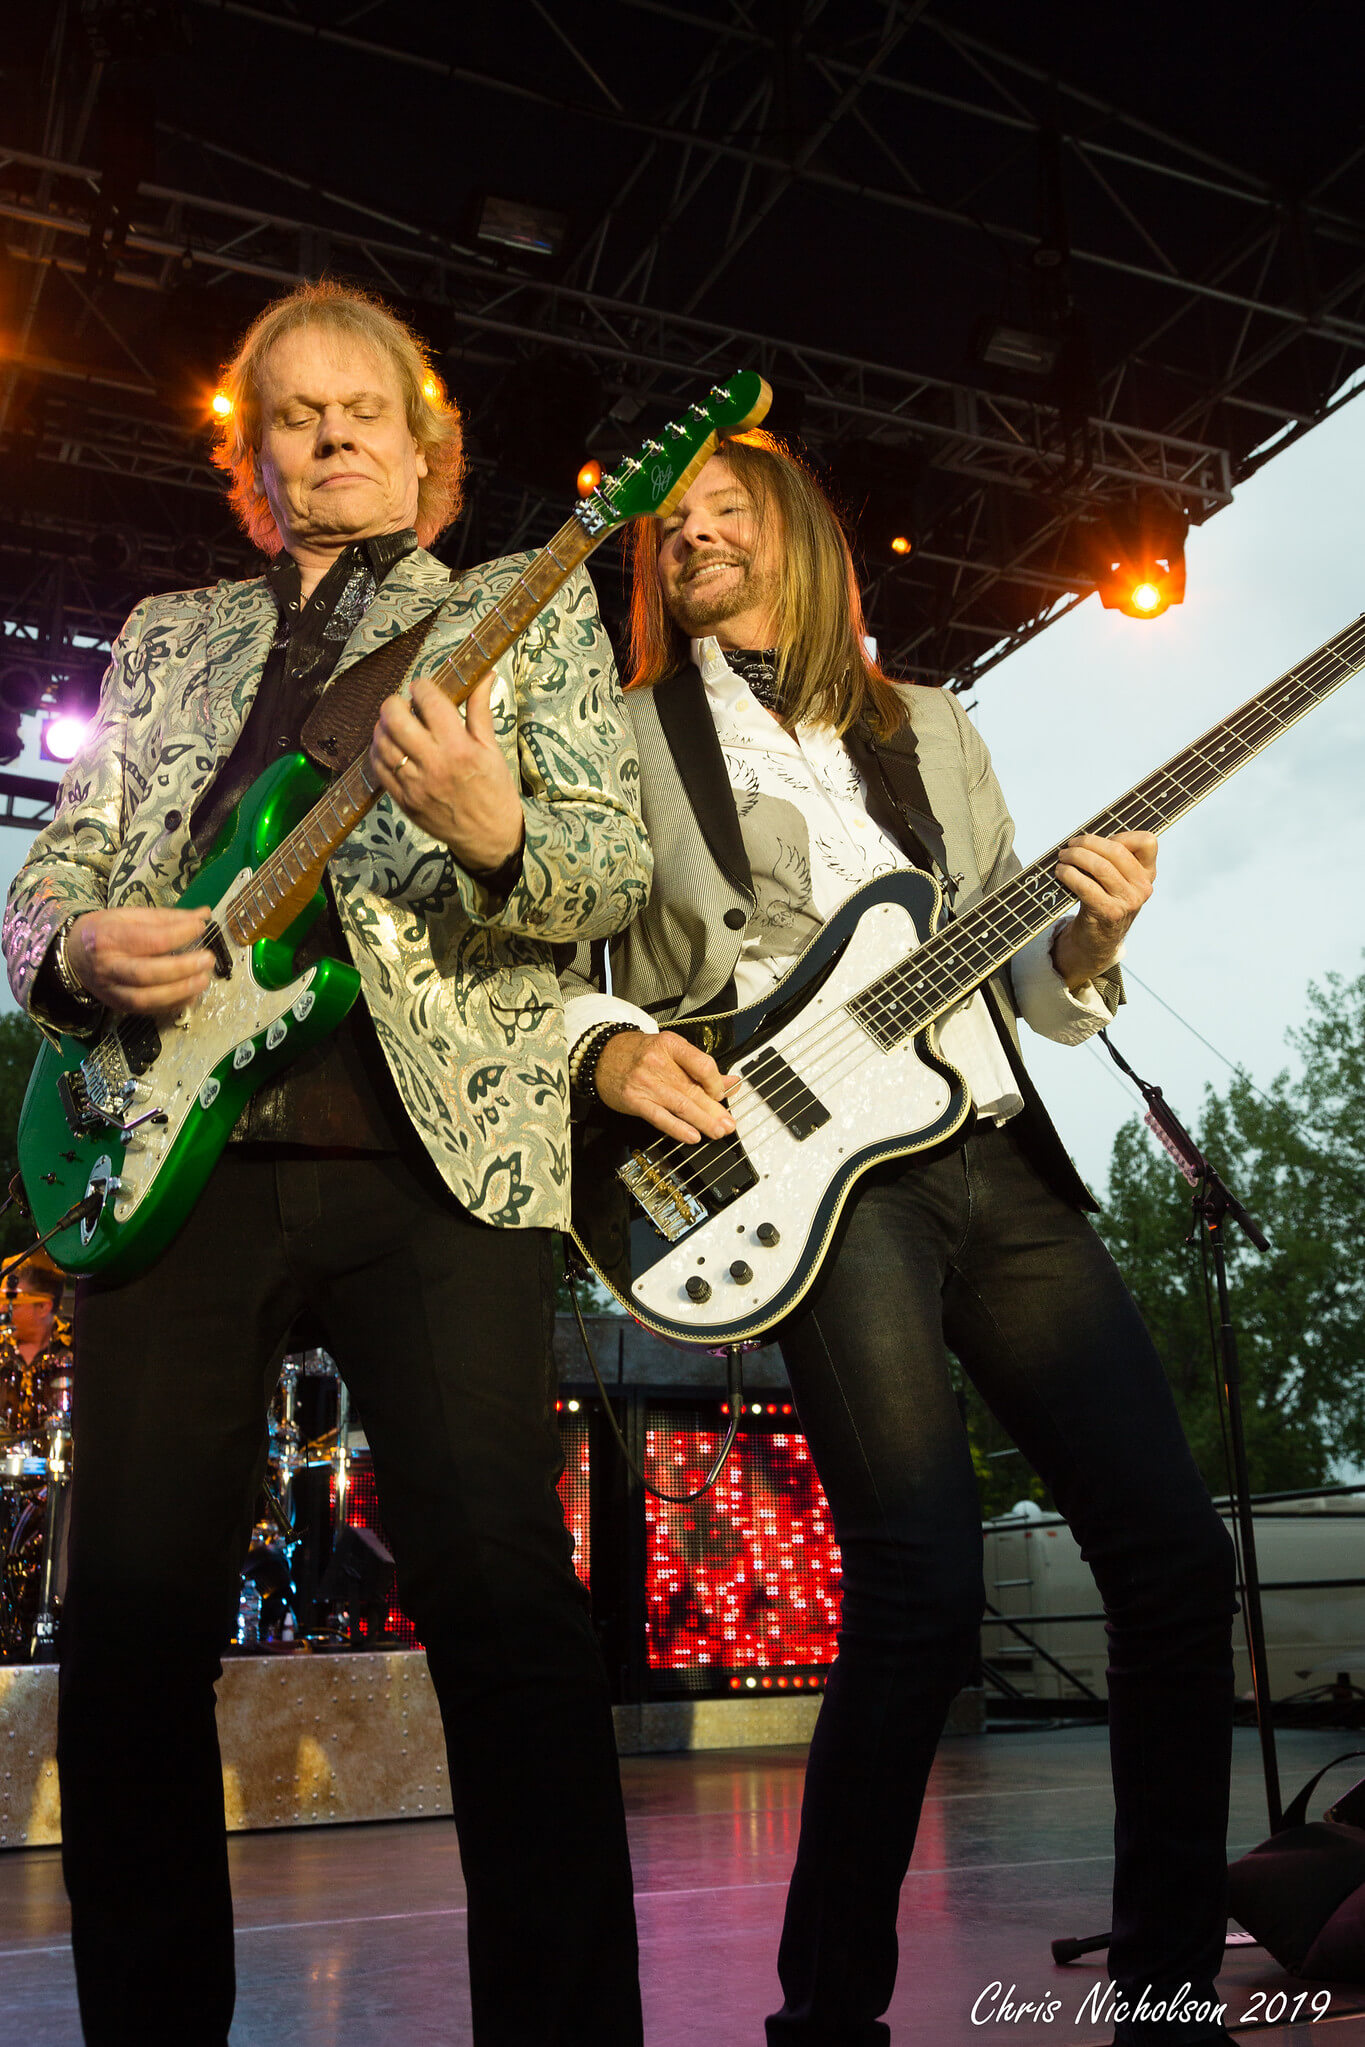 James Young (left) and Tommy Shaw (right). (Photo by Chris Nicholson)